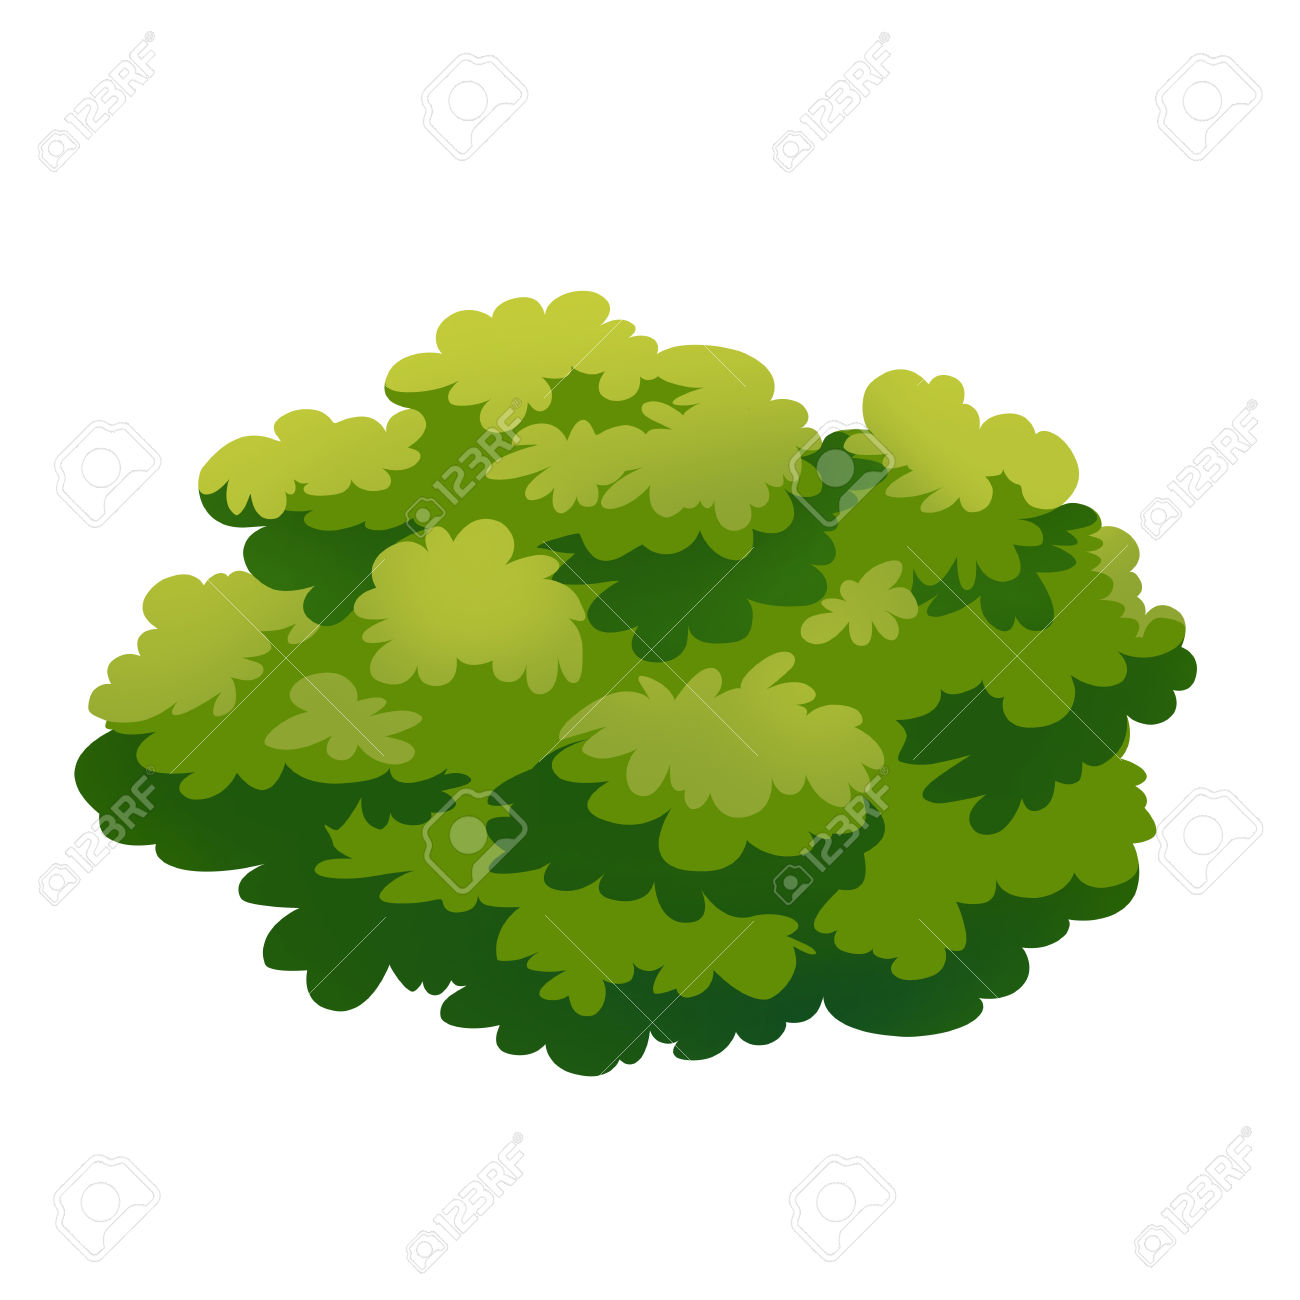 Bushes clipart forest. Collection of bush free